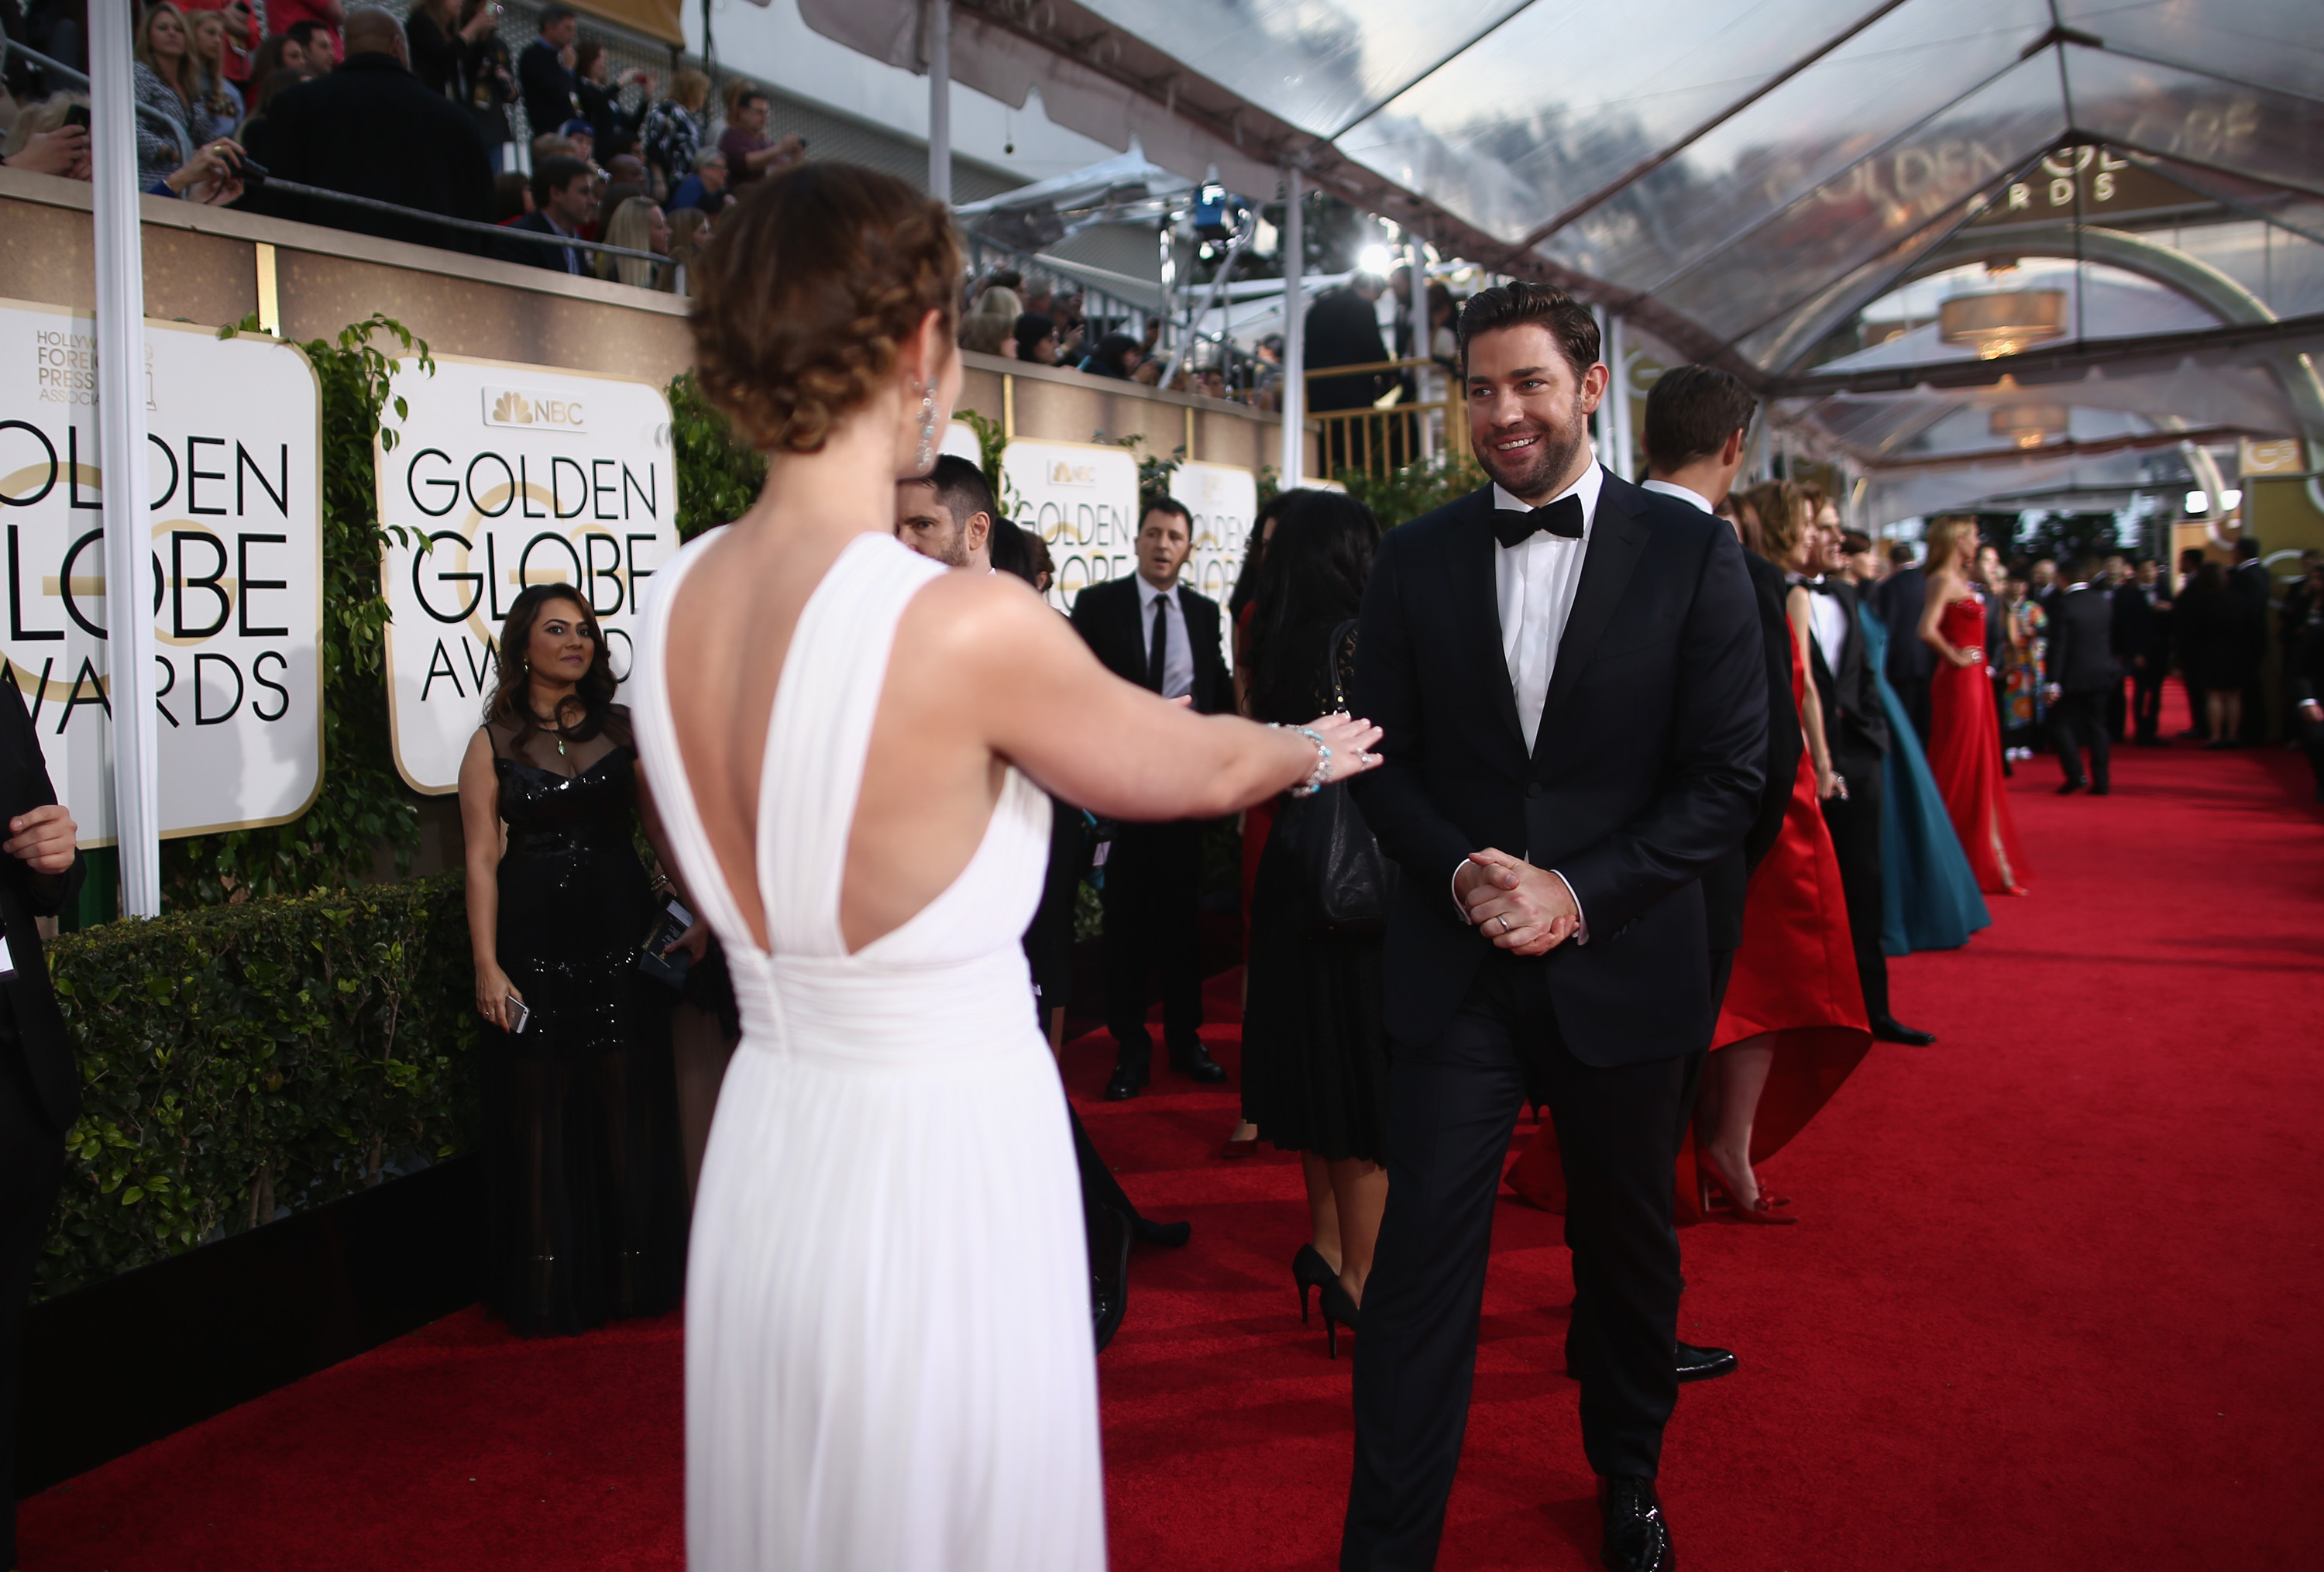 Actors Emily Blunt and John Krasinski arrive to the 72nd Annual Golden Globe Awards held at the Beverly Hilton Hotel on January 11, 2015.